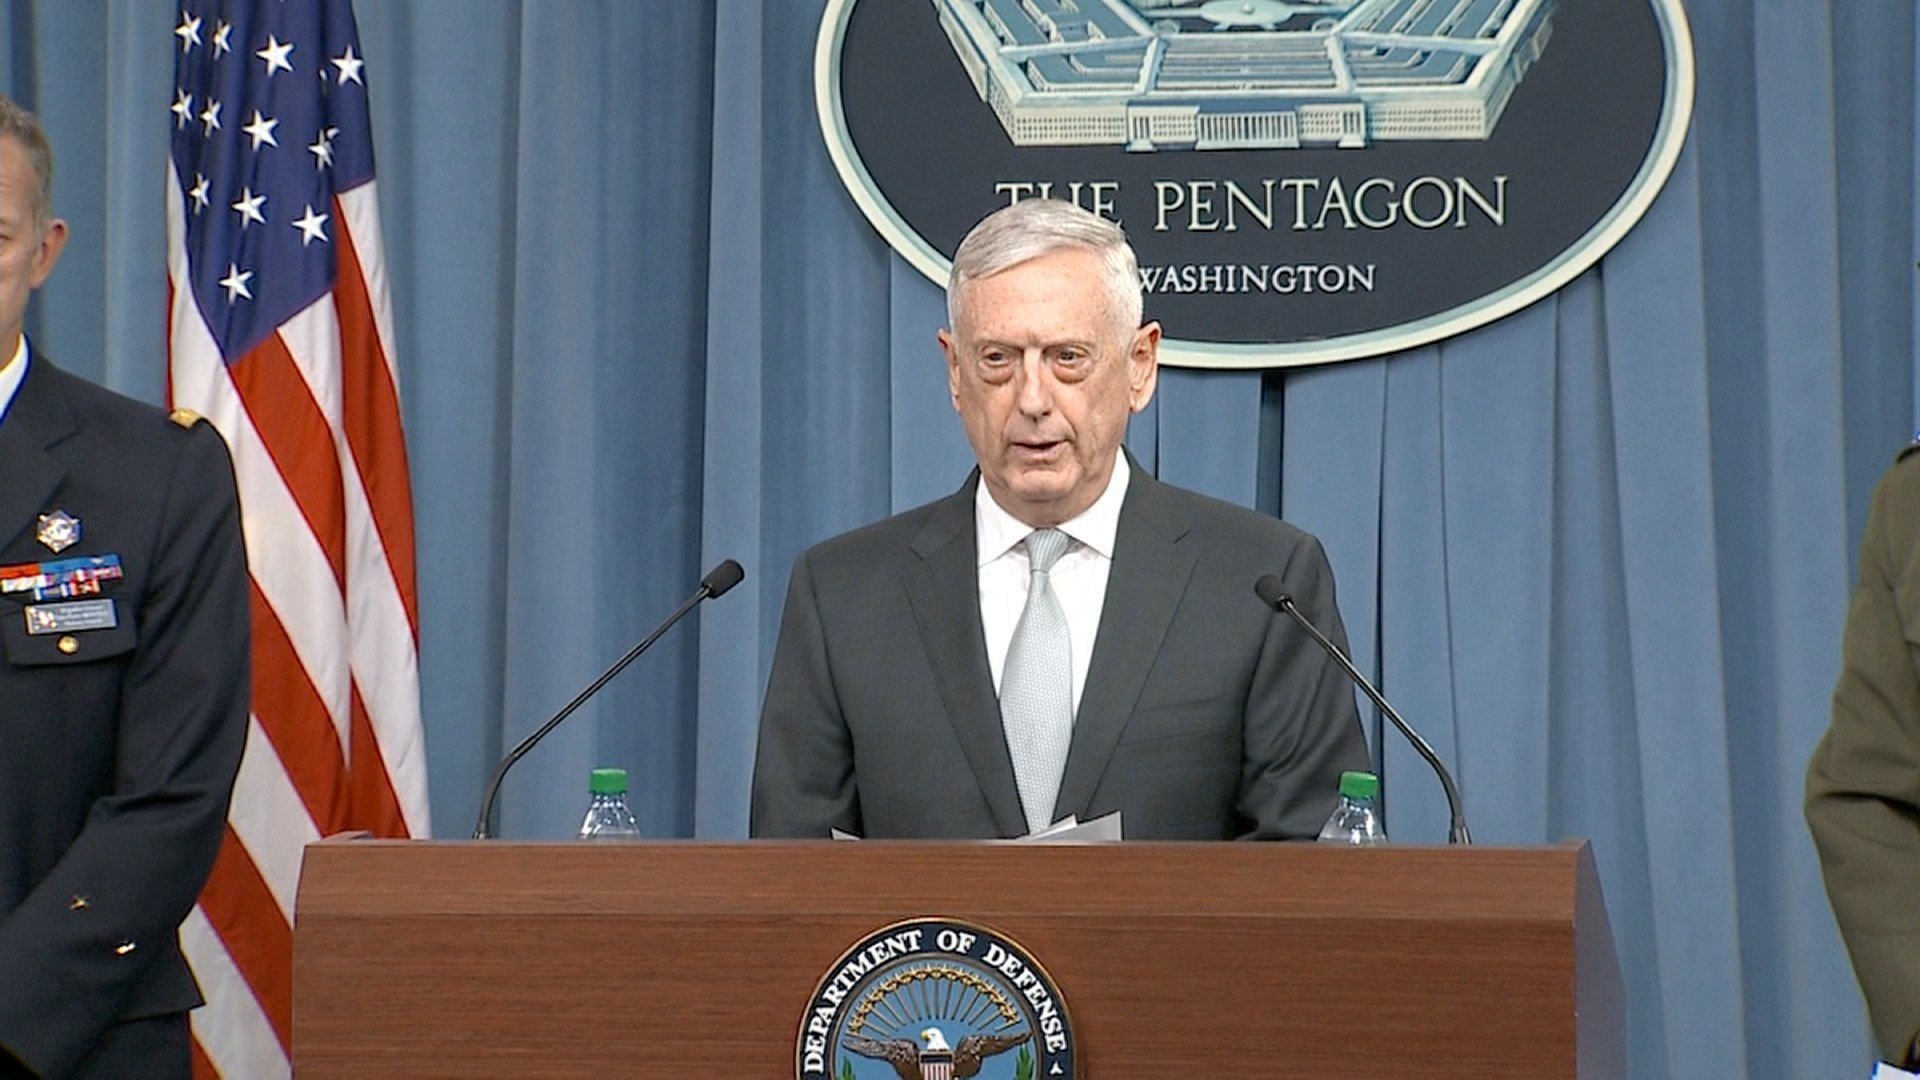 Defense Secretary James Mattis speaks during a Pentagon briefing after President Trump announced U.S. strikes on Syria